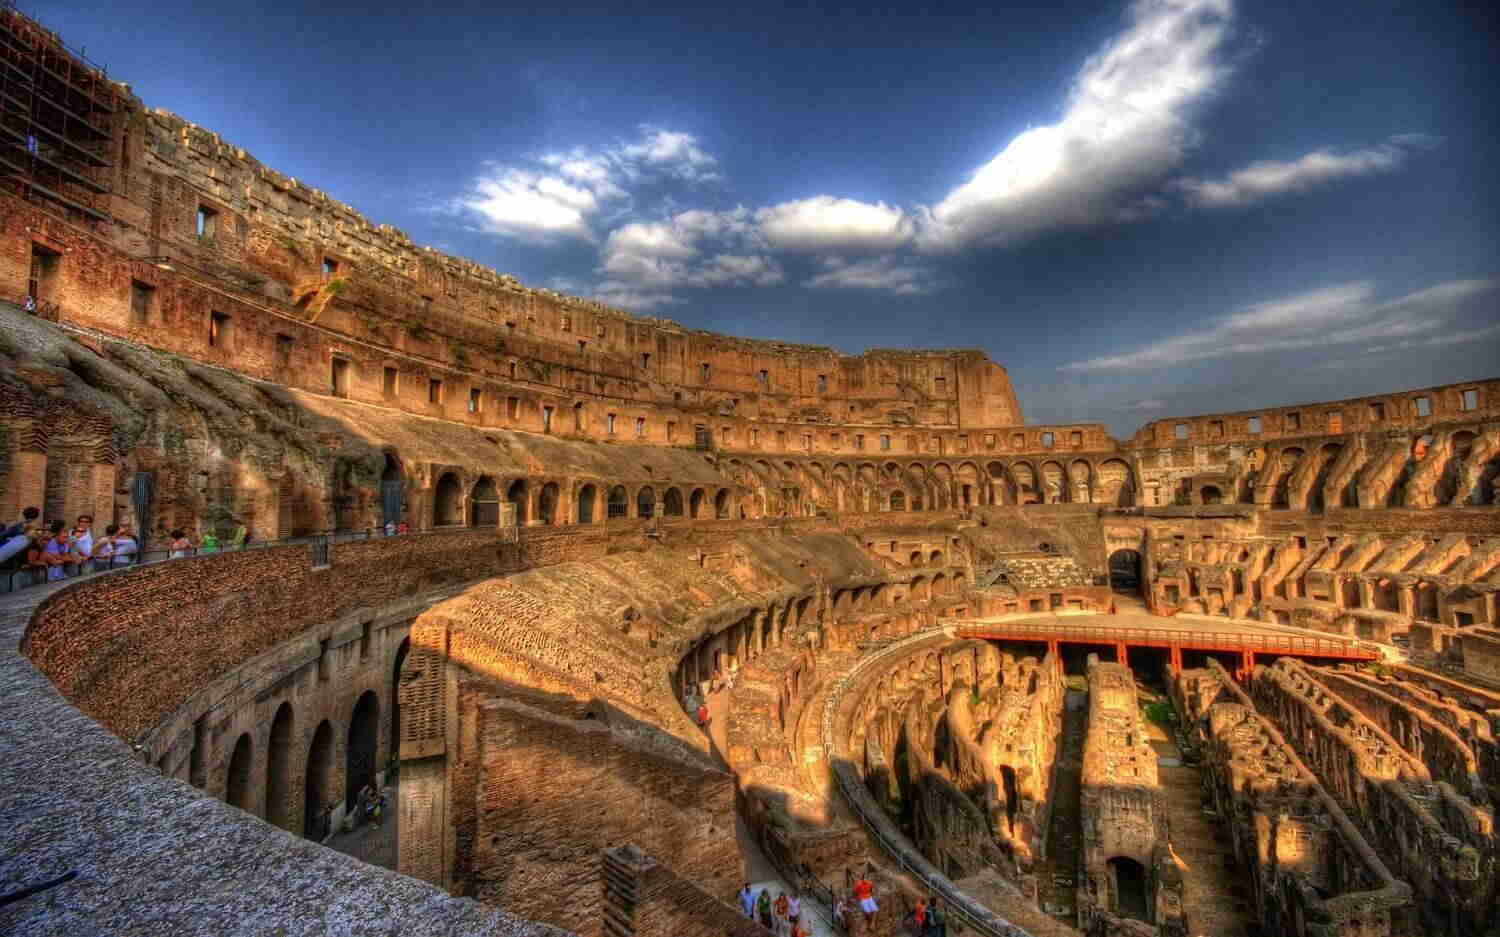 What Was The Colosseum Used for?